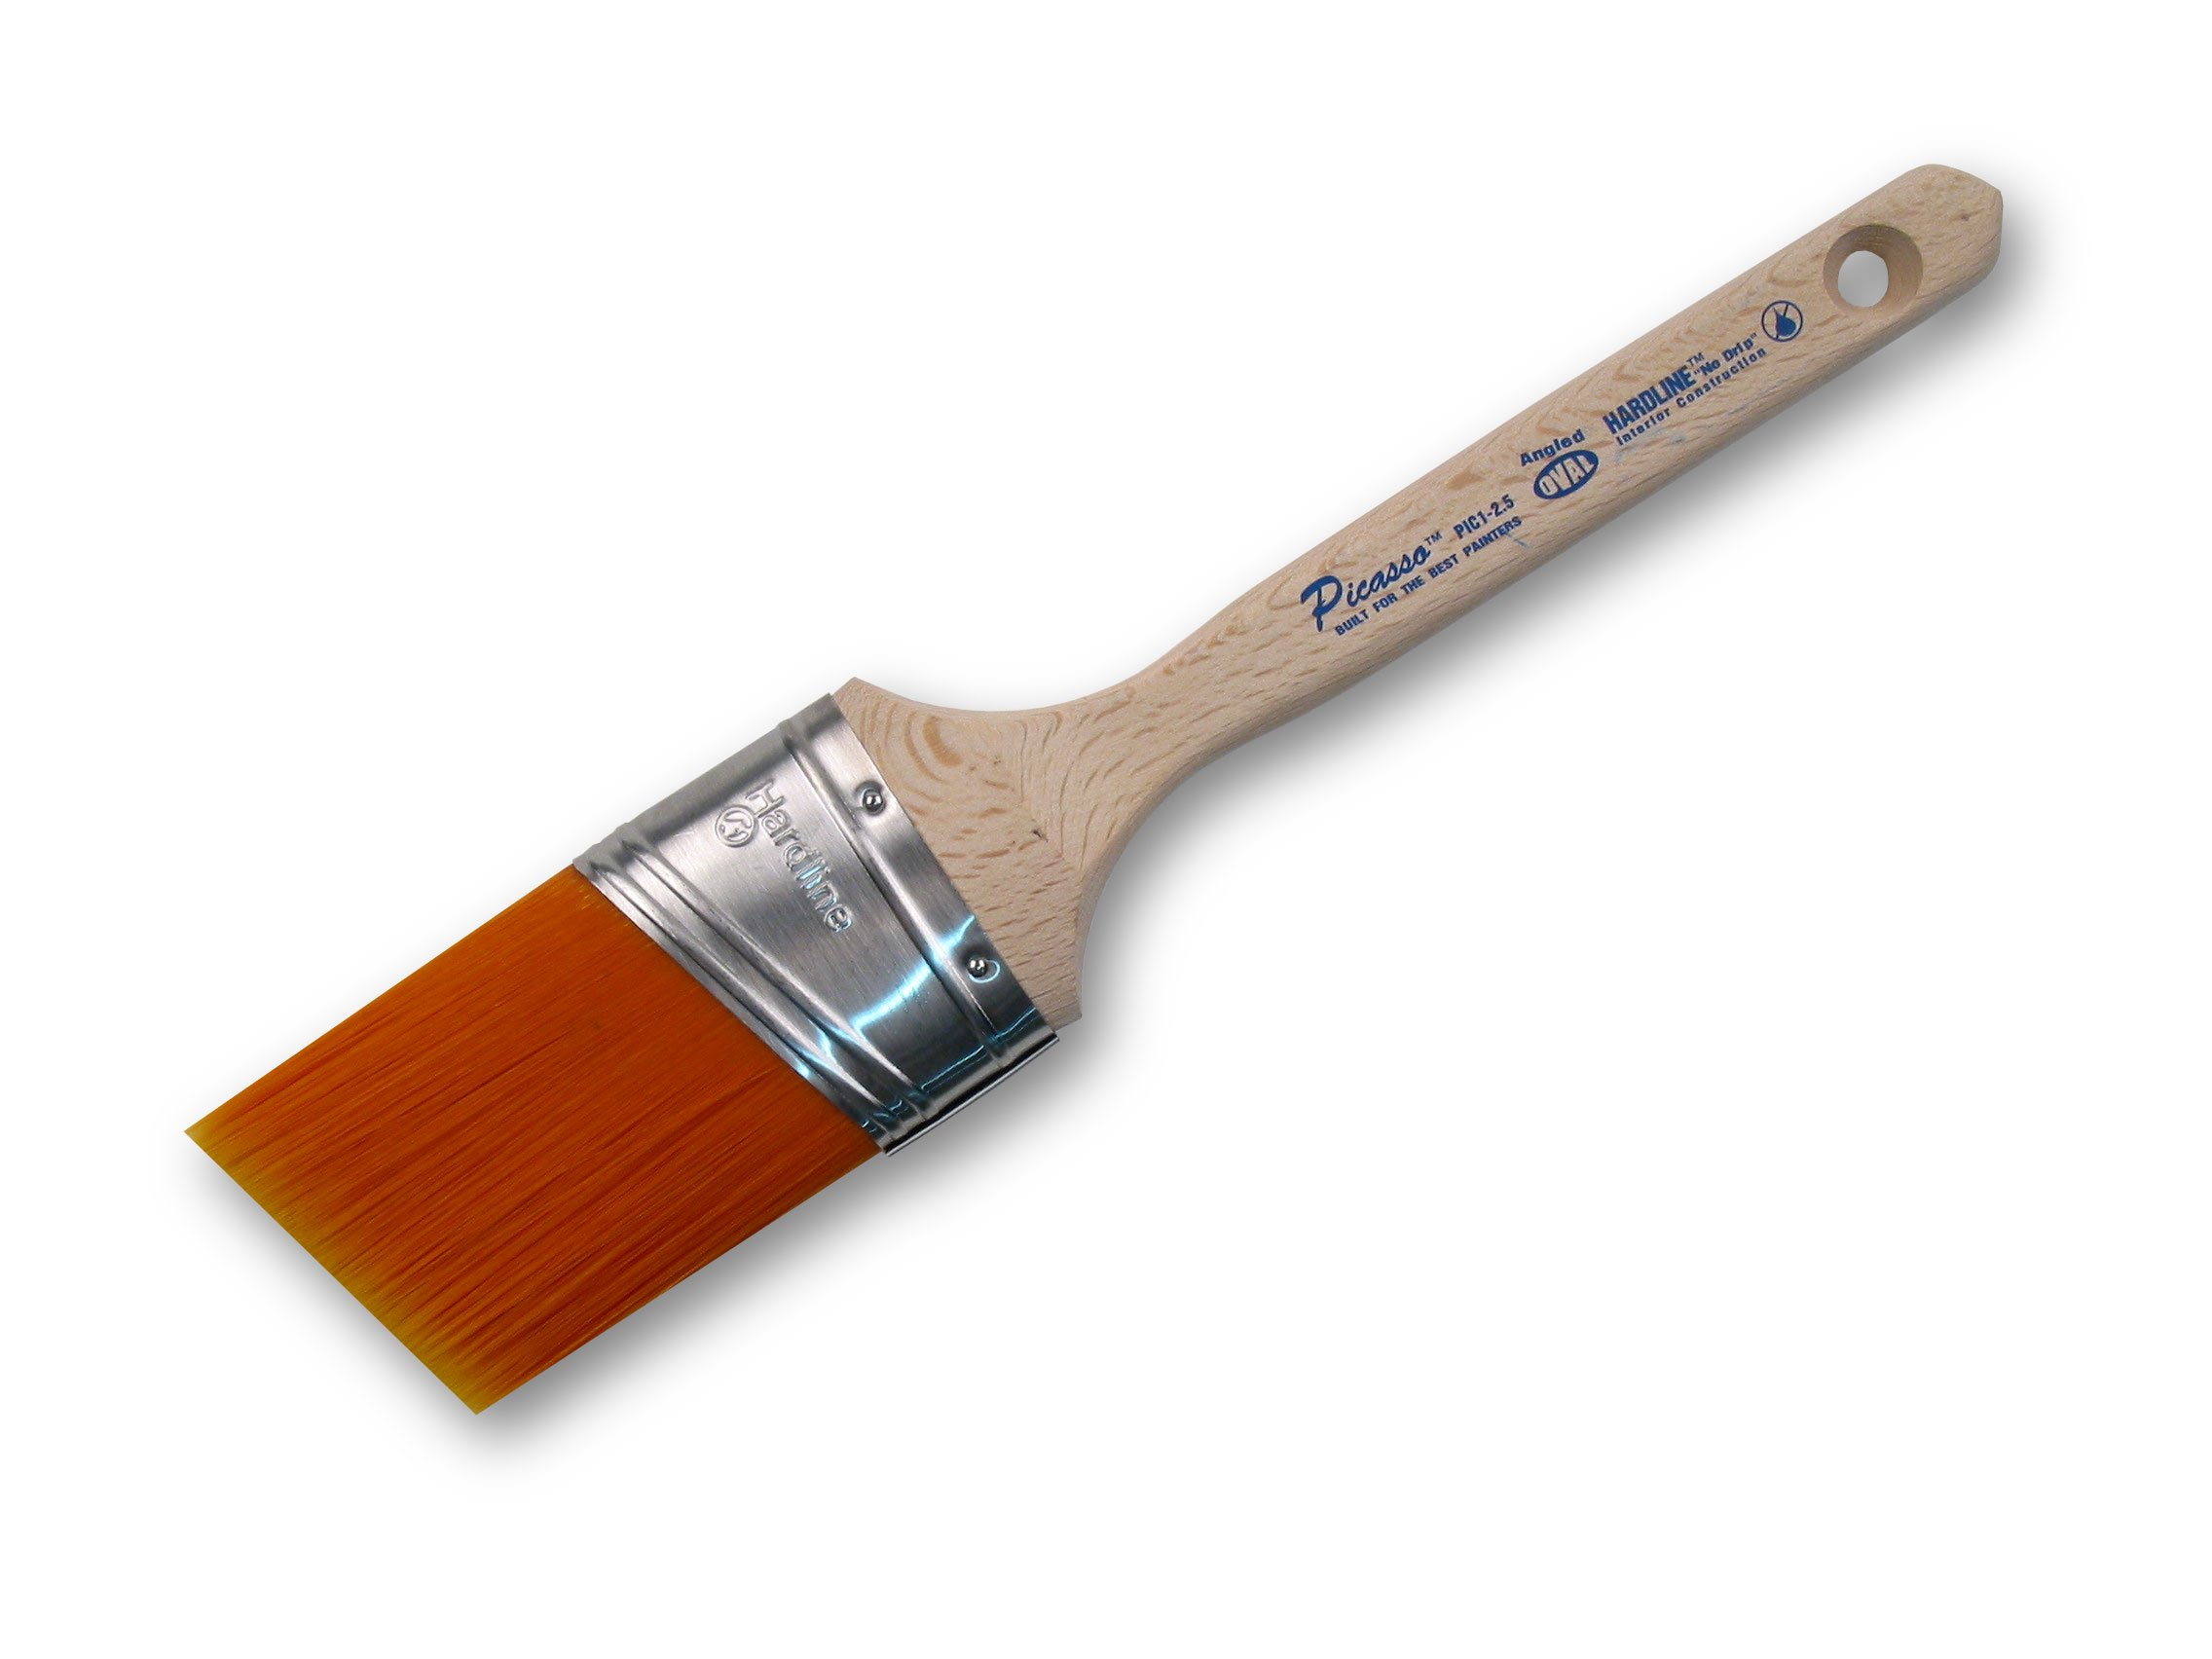 Proform Technologies PIC1-2.5 Picasso Oval Angle Sash Paint Brush, 2-1/2-Inch by Proform Technologies